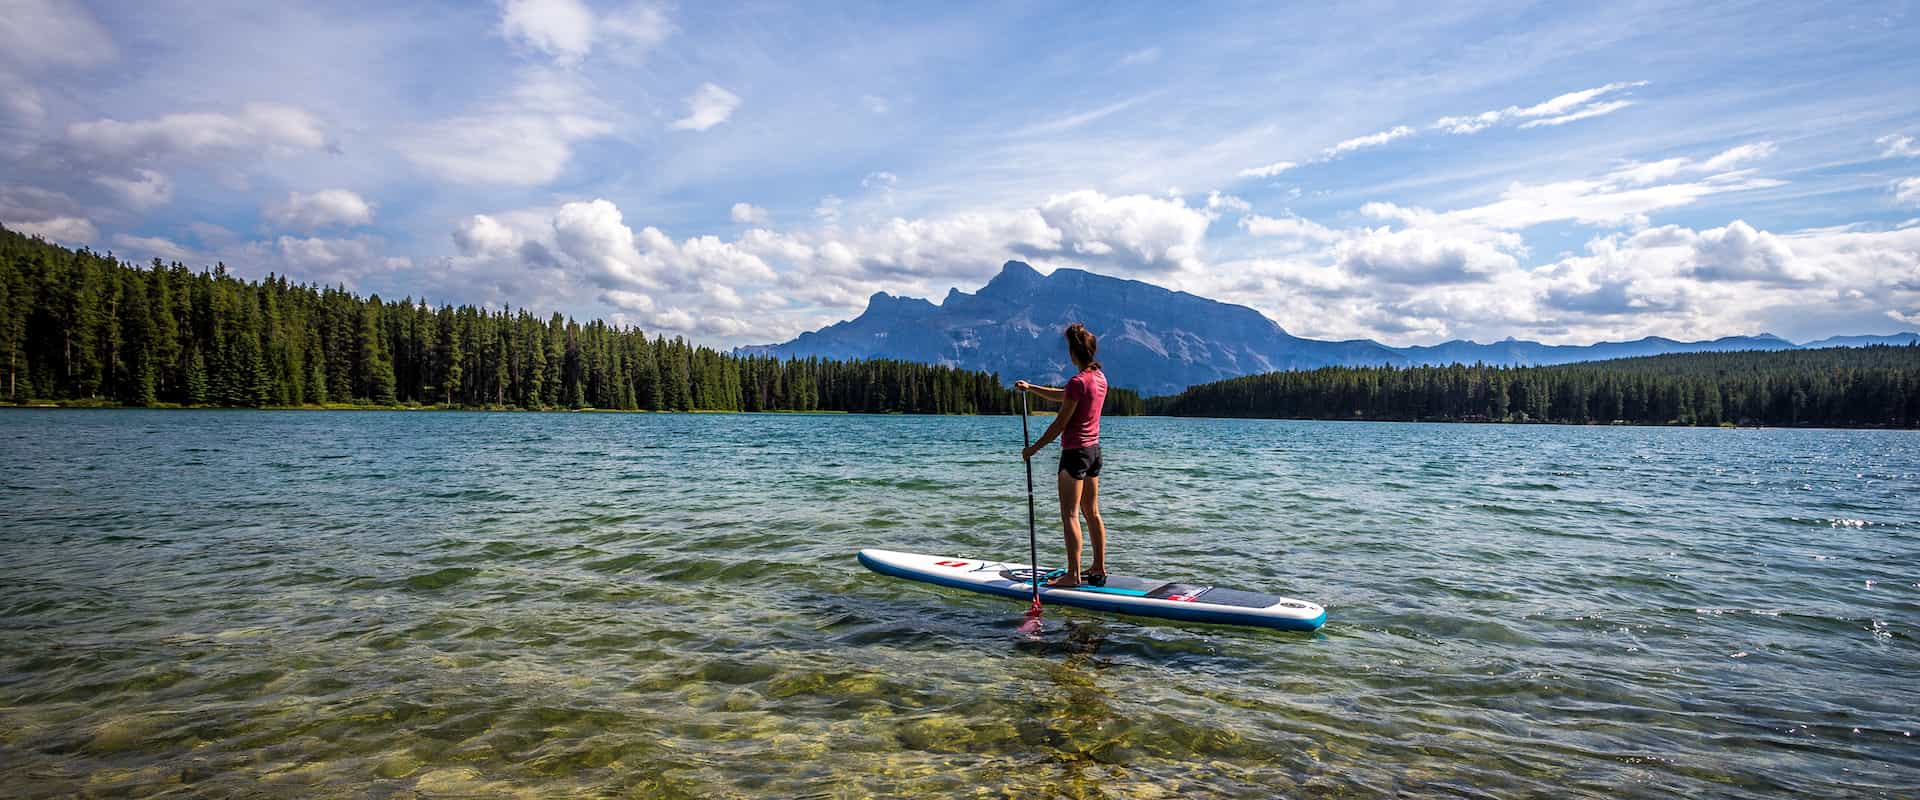 SUP is the perfect way to explore Banff